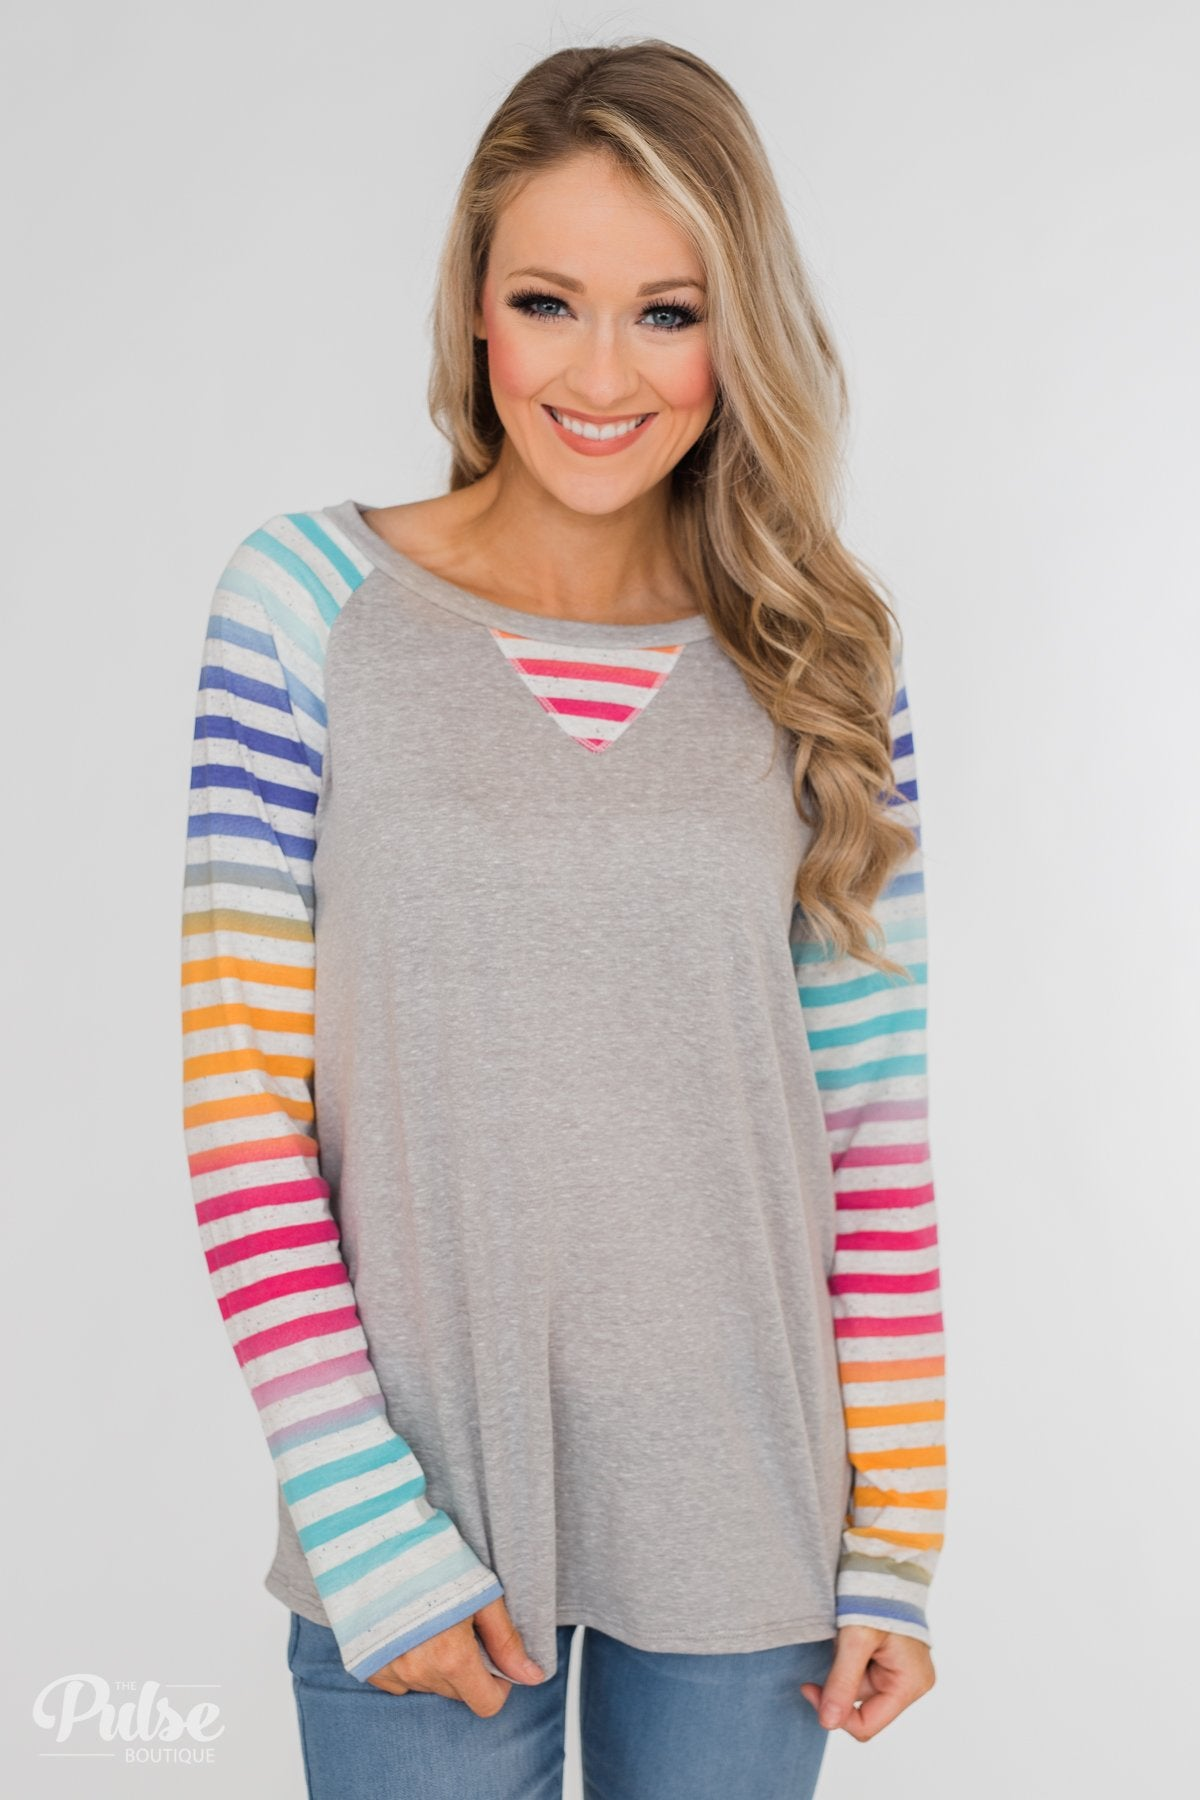 Multi-Colored Striped Sleeve Raglan Top- Grey